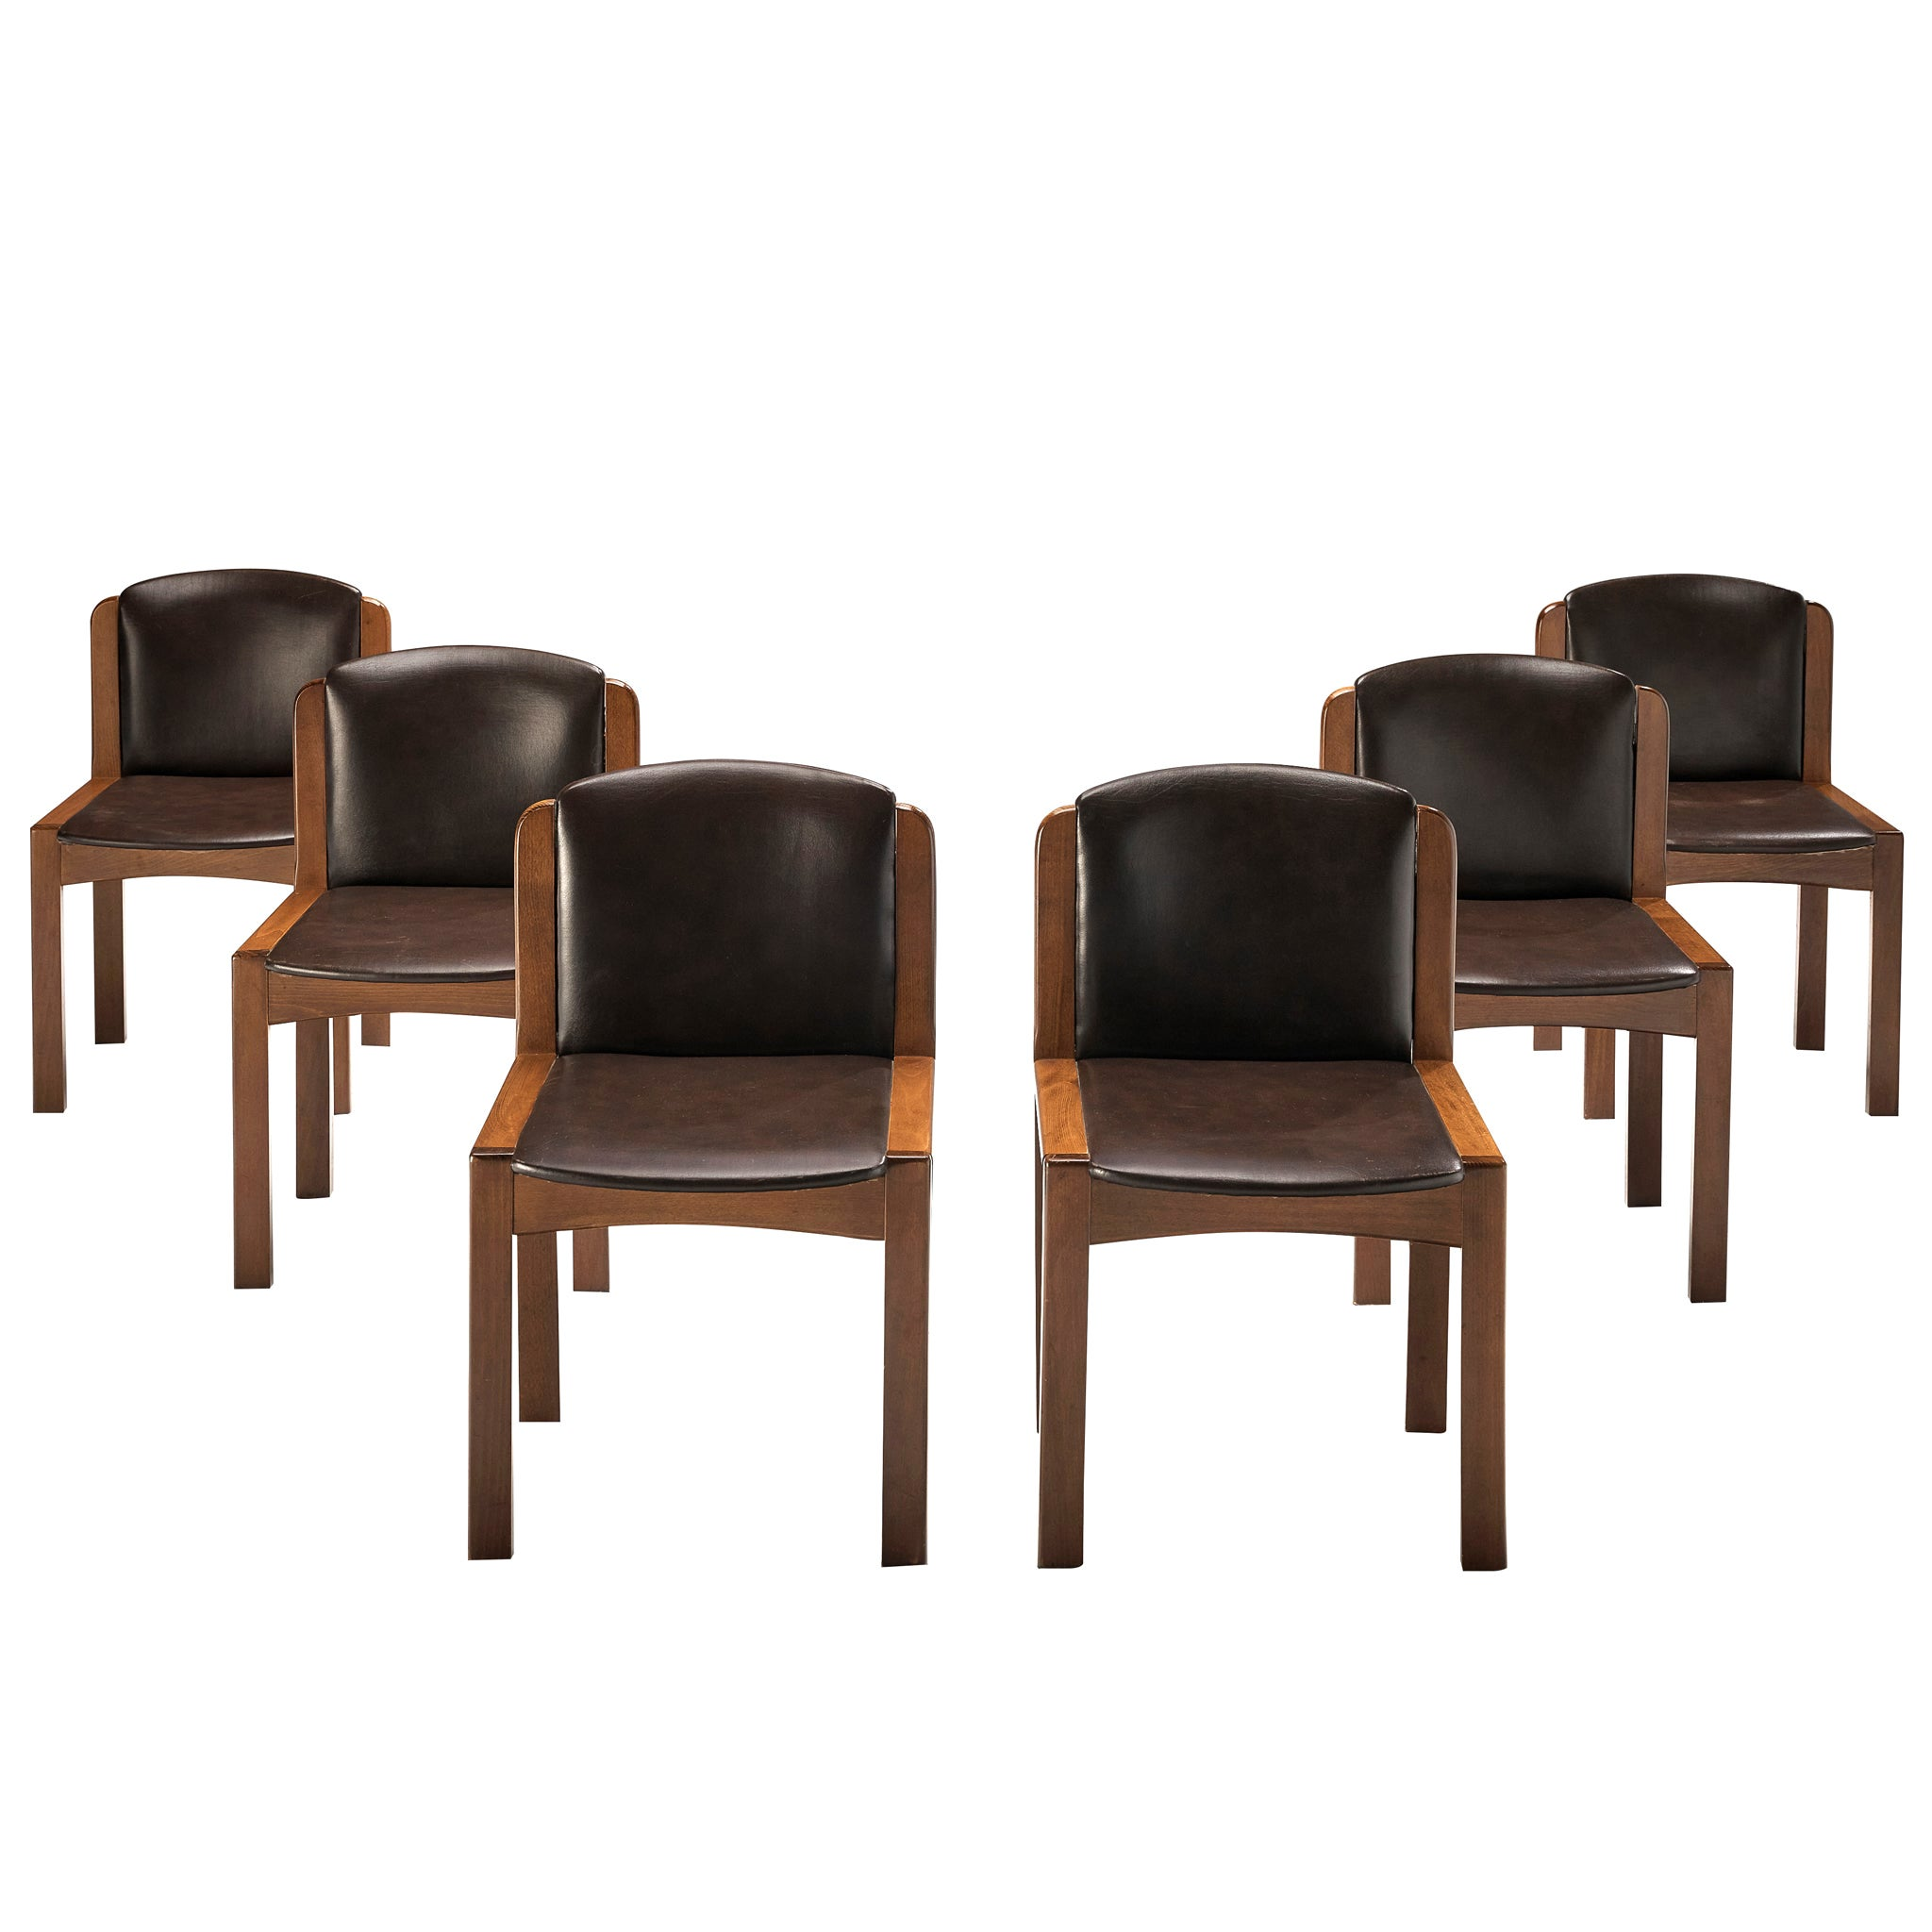 Joe Colombo Set of Six '300' Dining Chairs in Brown Leatherette